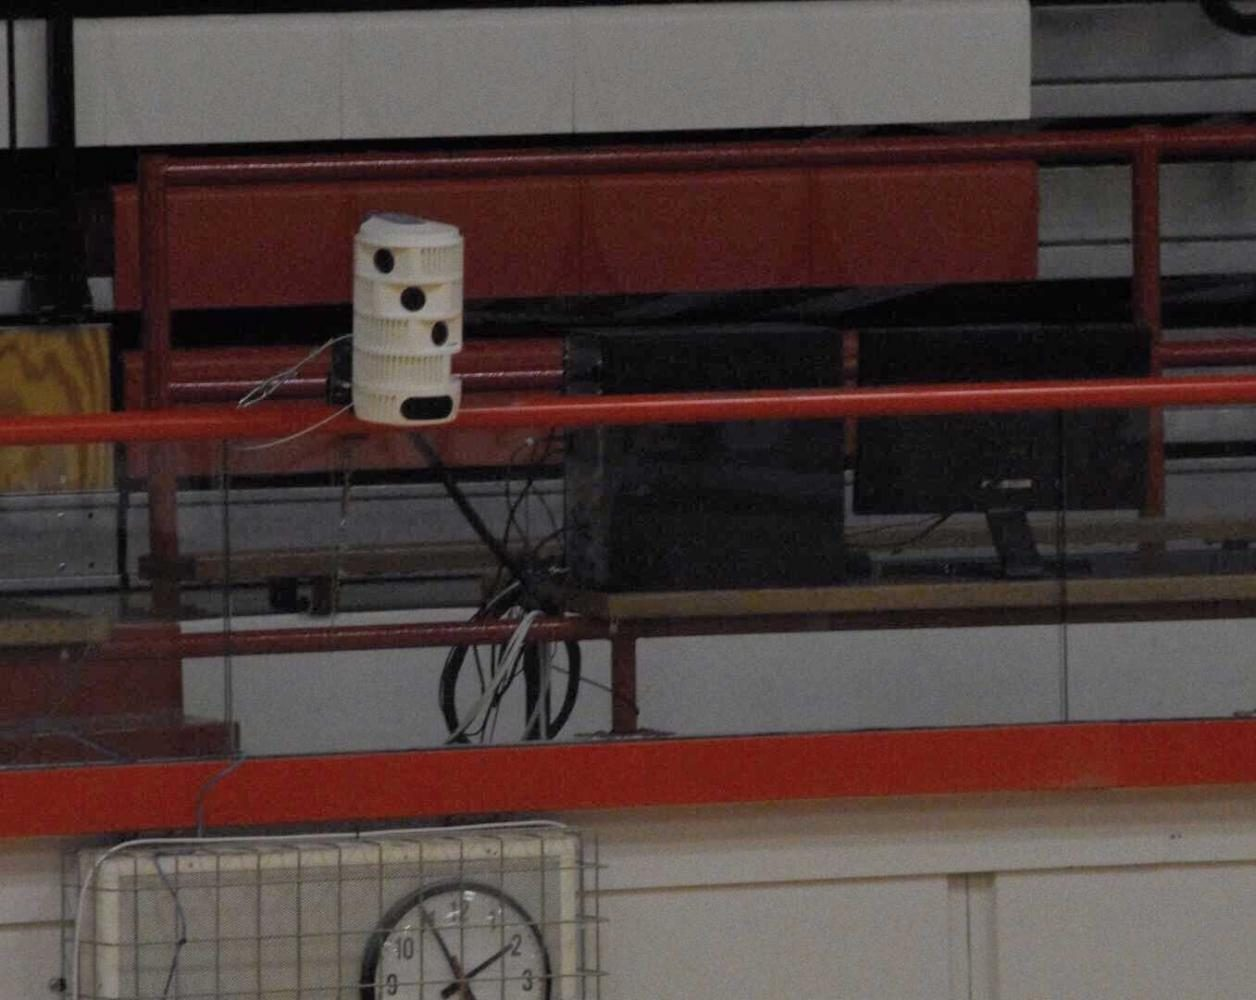 A set of the cylinder-shaped cameras can also be found just above the womens locker room entrance in the main gym.